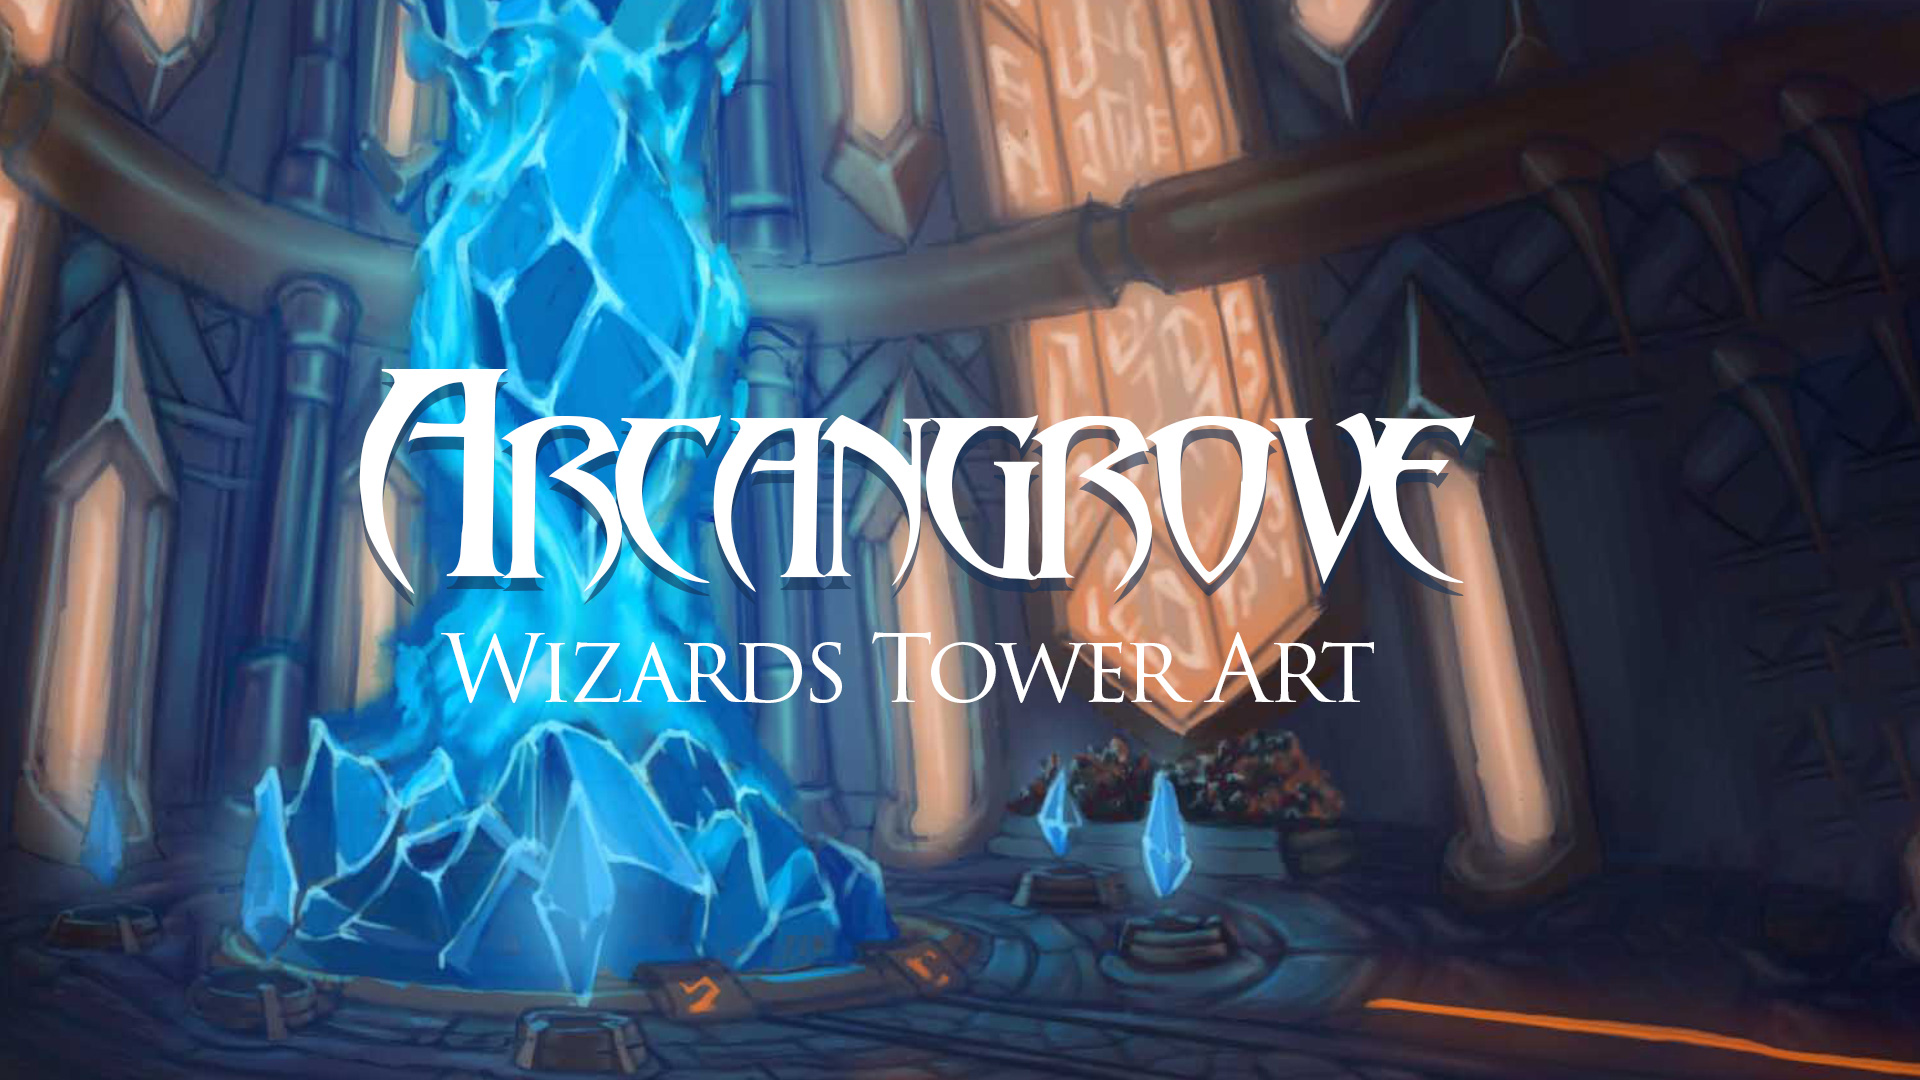 Arcangrove Wizard Tower Concept Art - Adventure Quest 3D